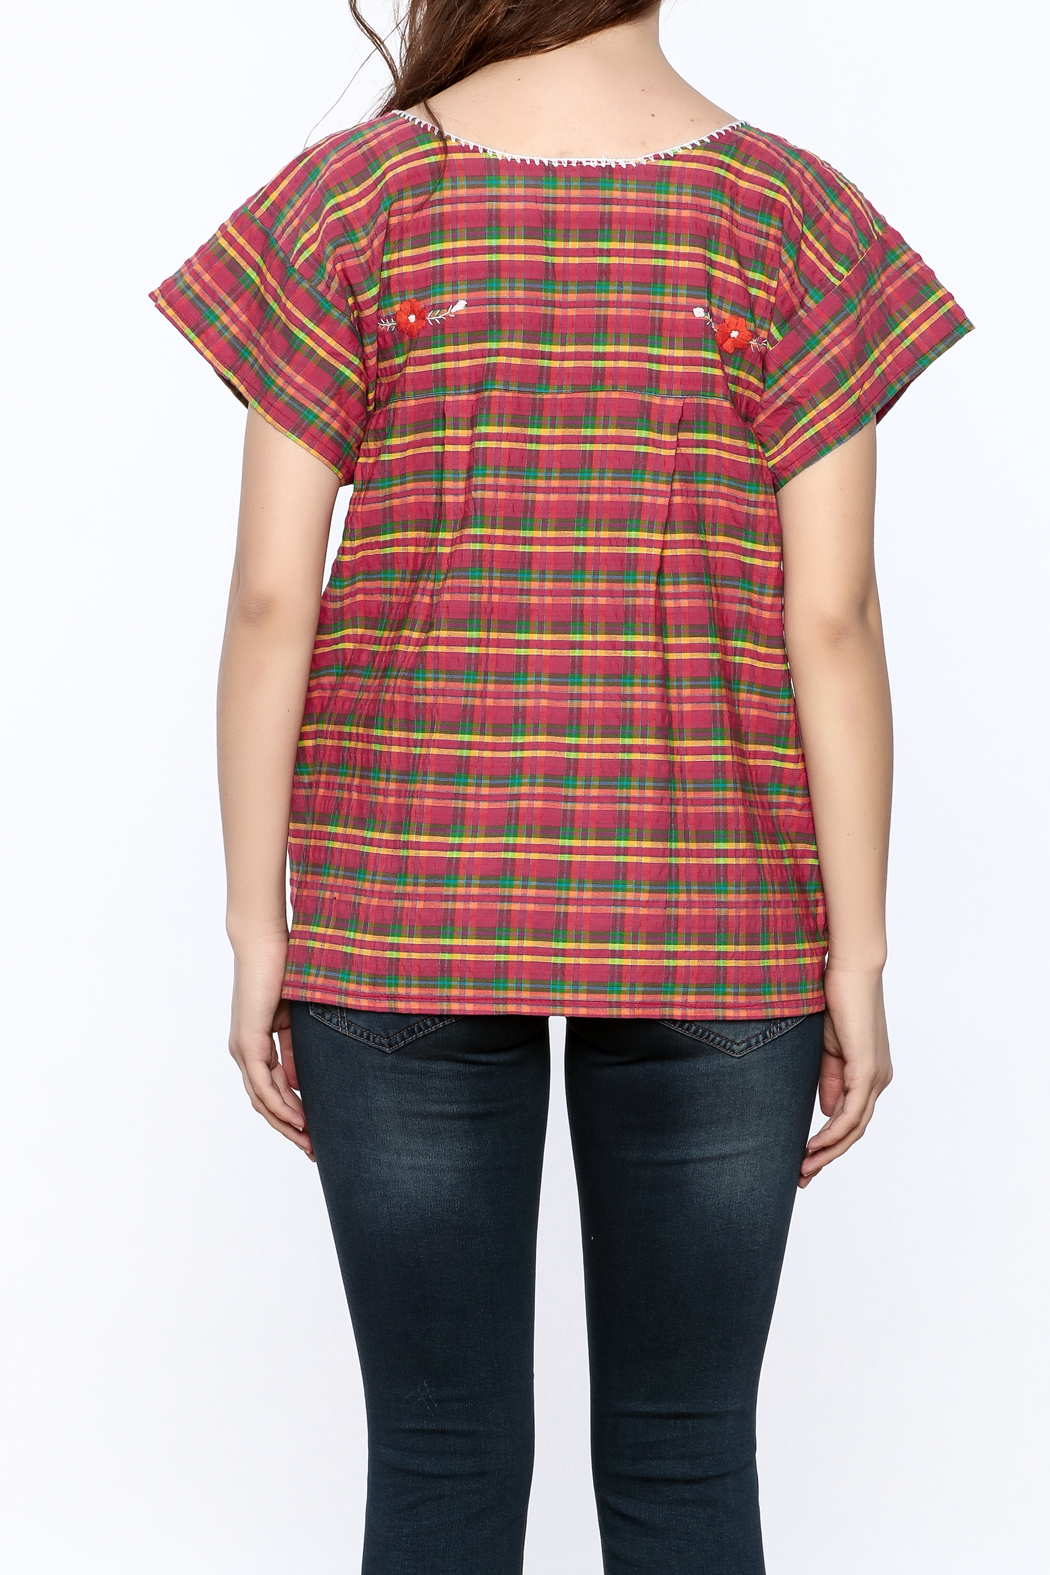 Nativa Plaid Xochitl Blouse - Back Cropped Image